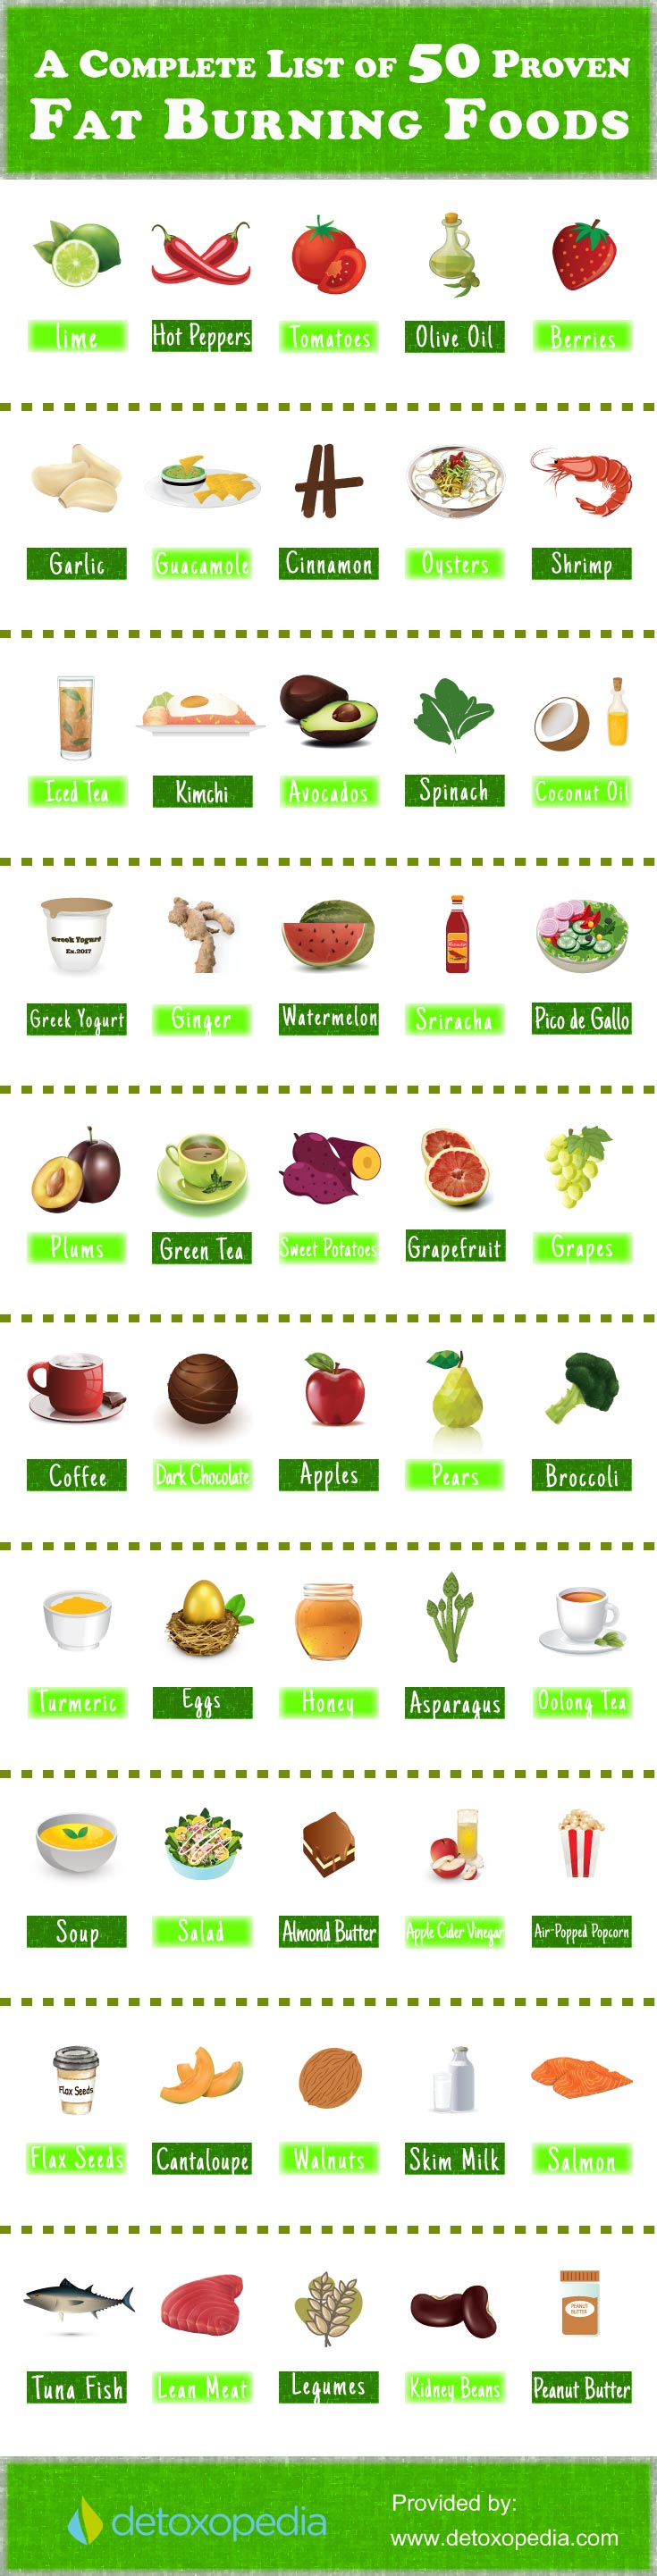 Complete list of 50 proven Fat Burning Foods